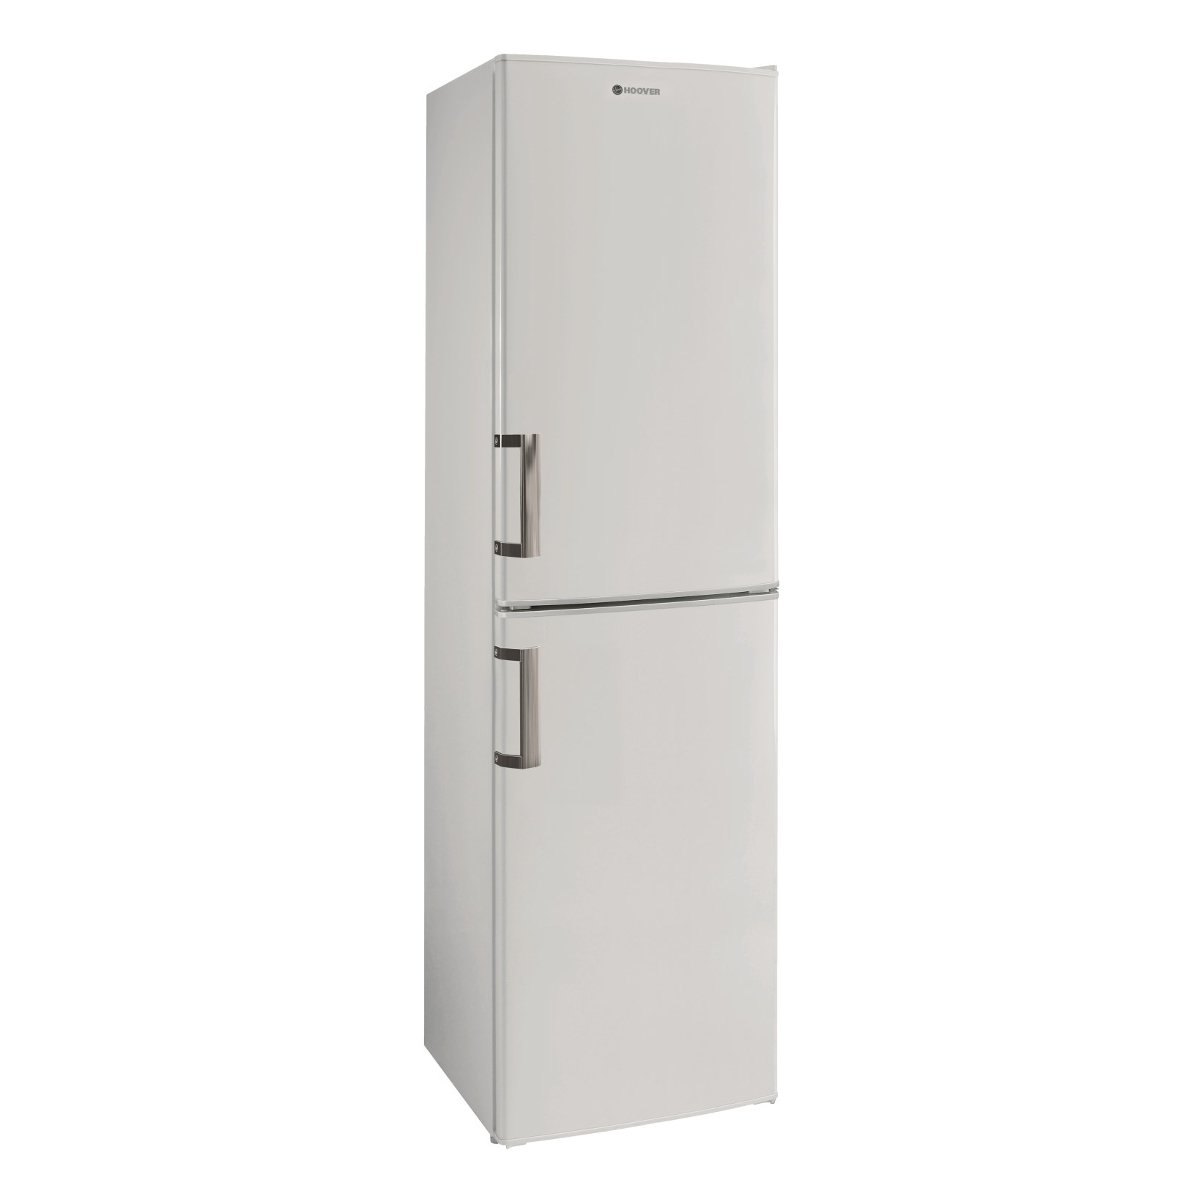 Hoover HVBF5172WHK Frost Free 55cm Freestanding Fridge Freezer White:  Amazon.co.uk: Large Appliances